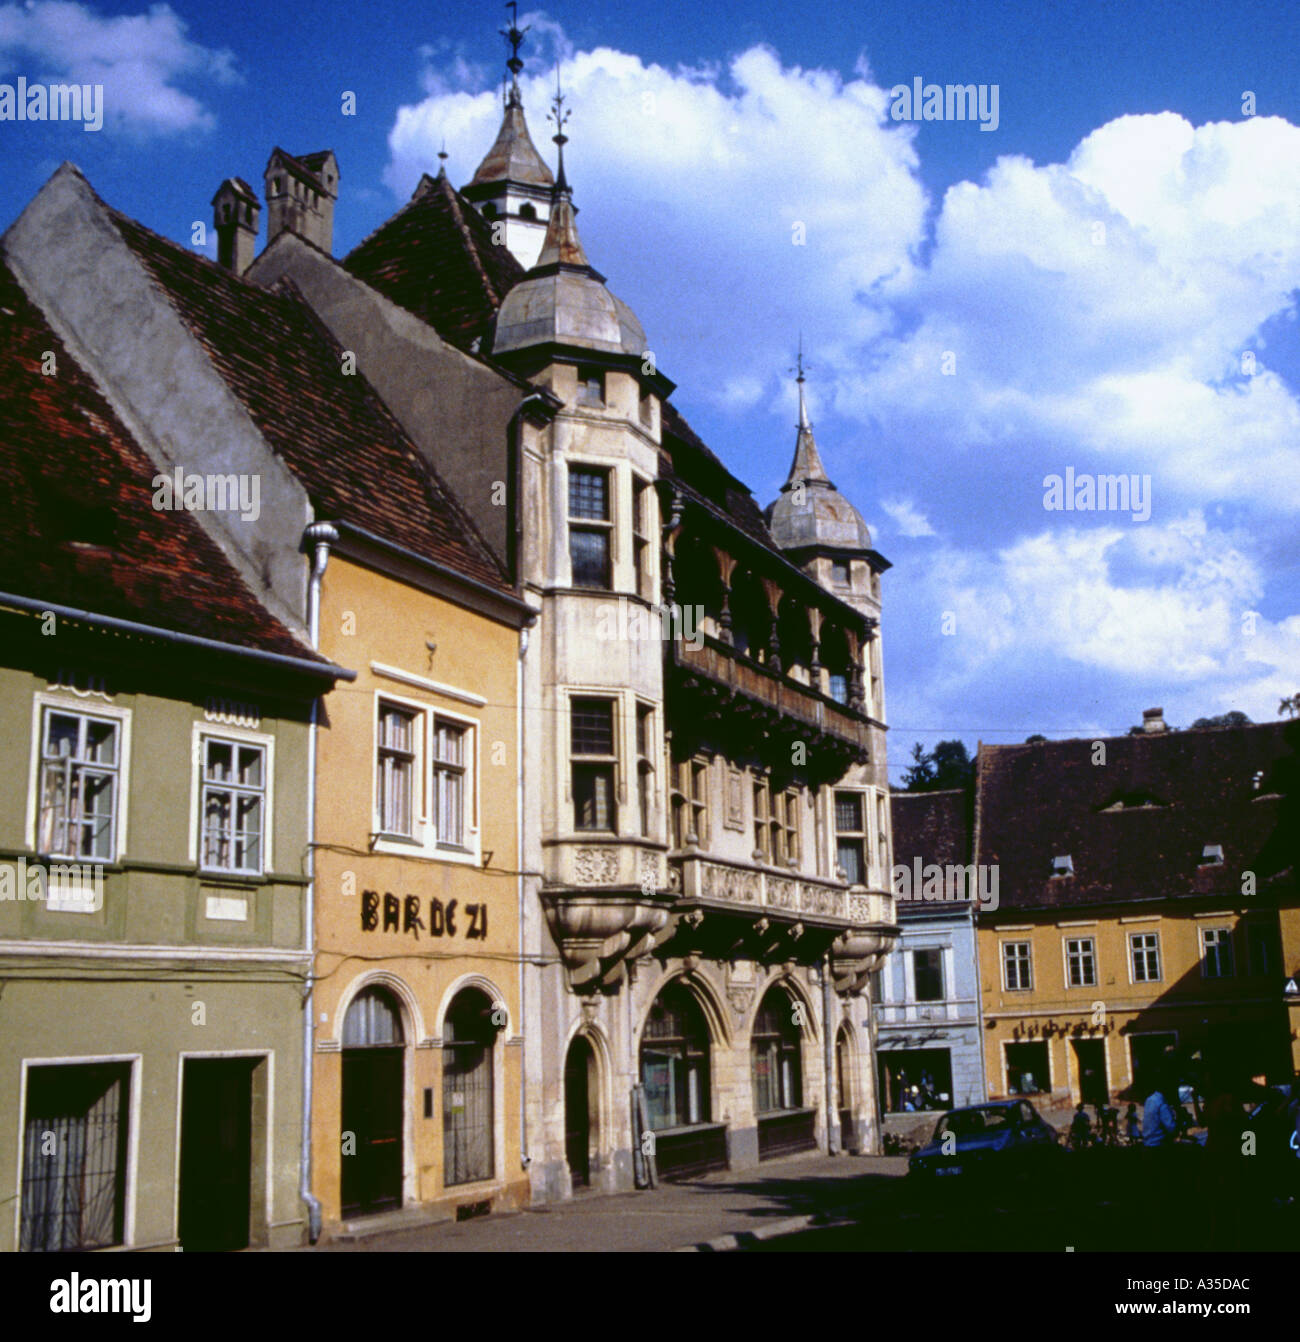 Romania Sighisoara Schäßburg Street in the old city building houses - Stock Image